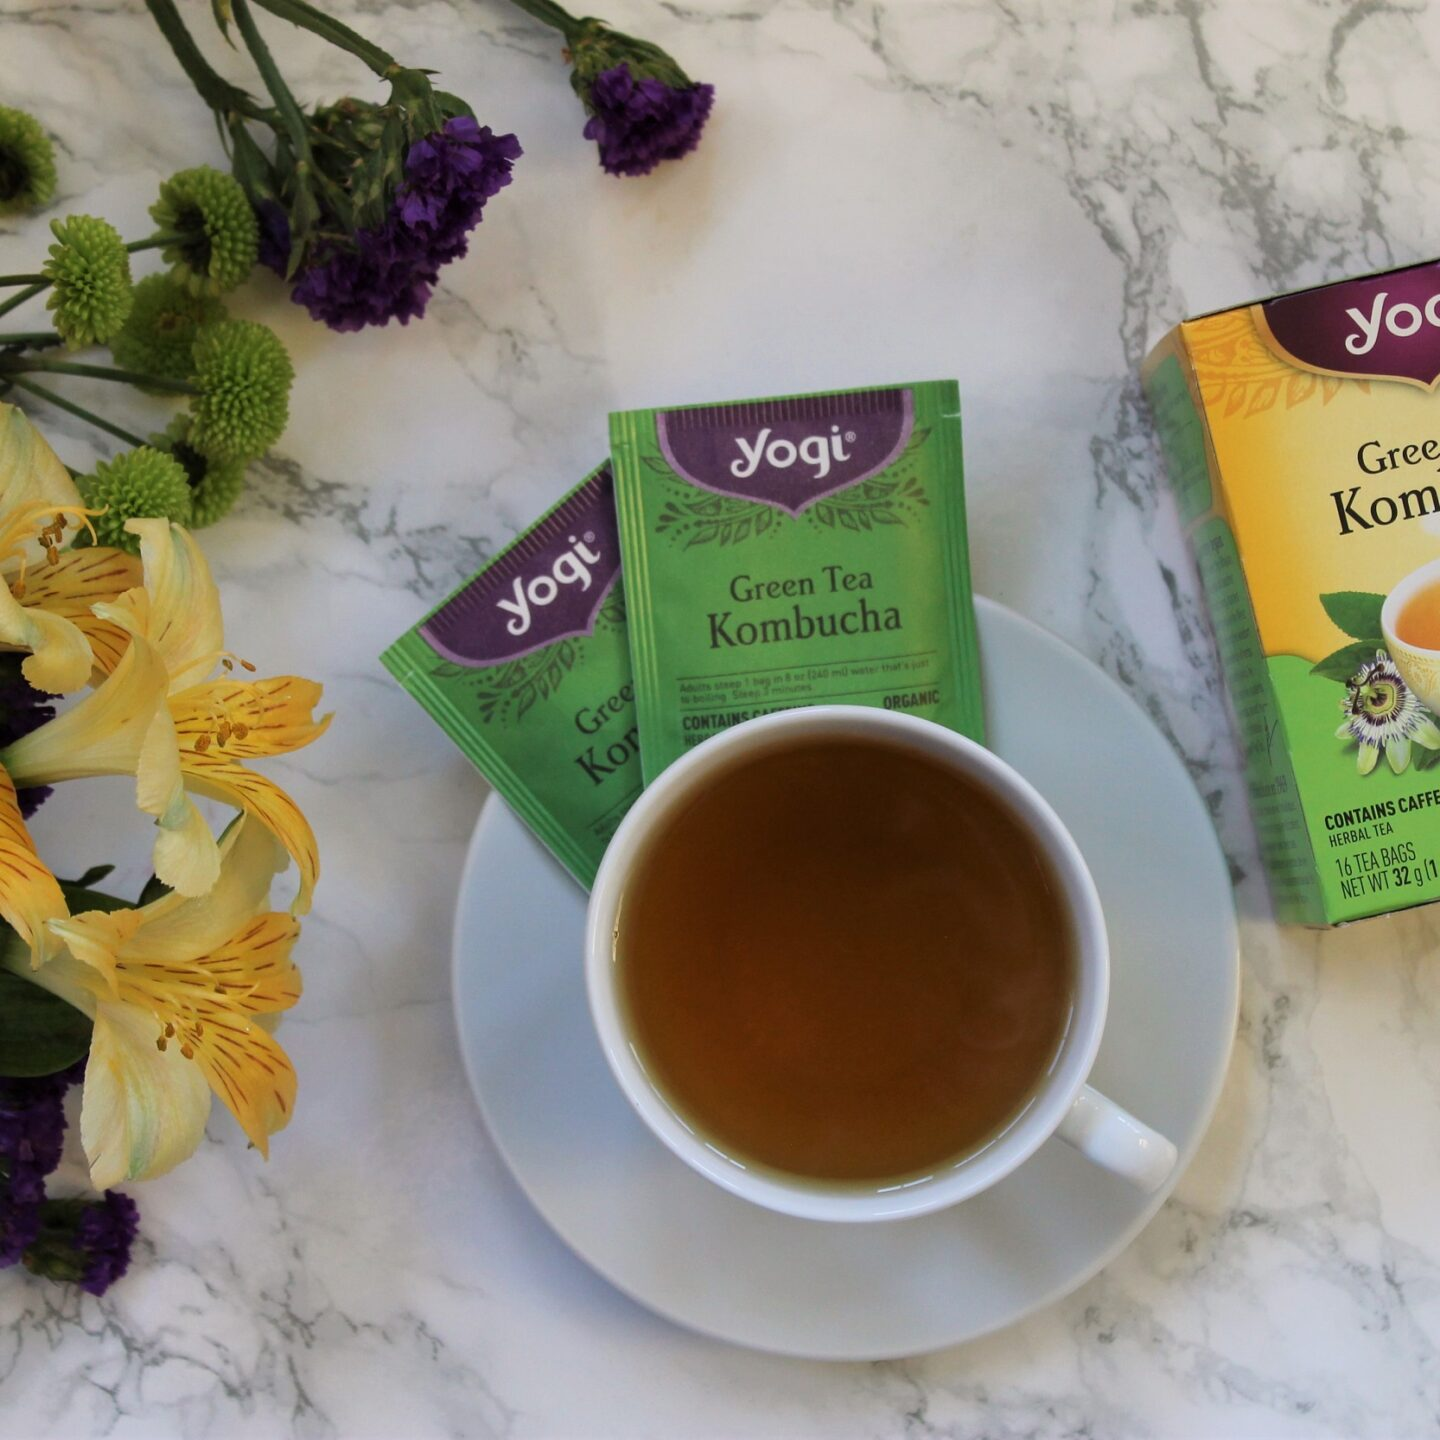 Yogi Tea Green Tea Kombucha Review